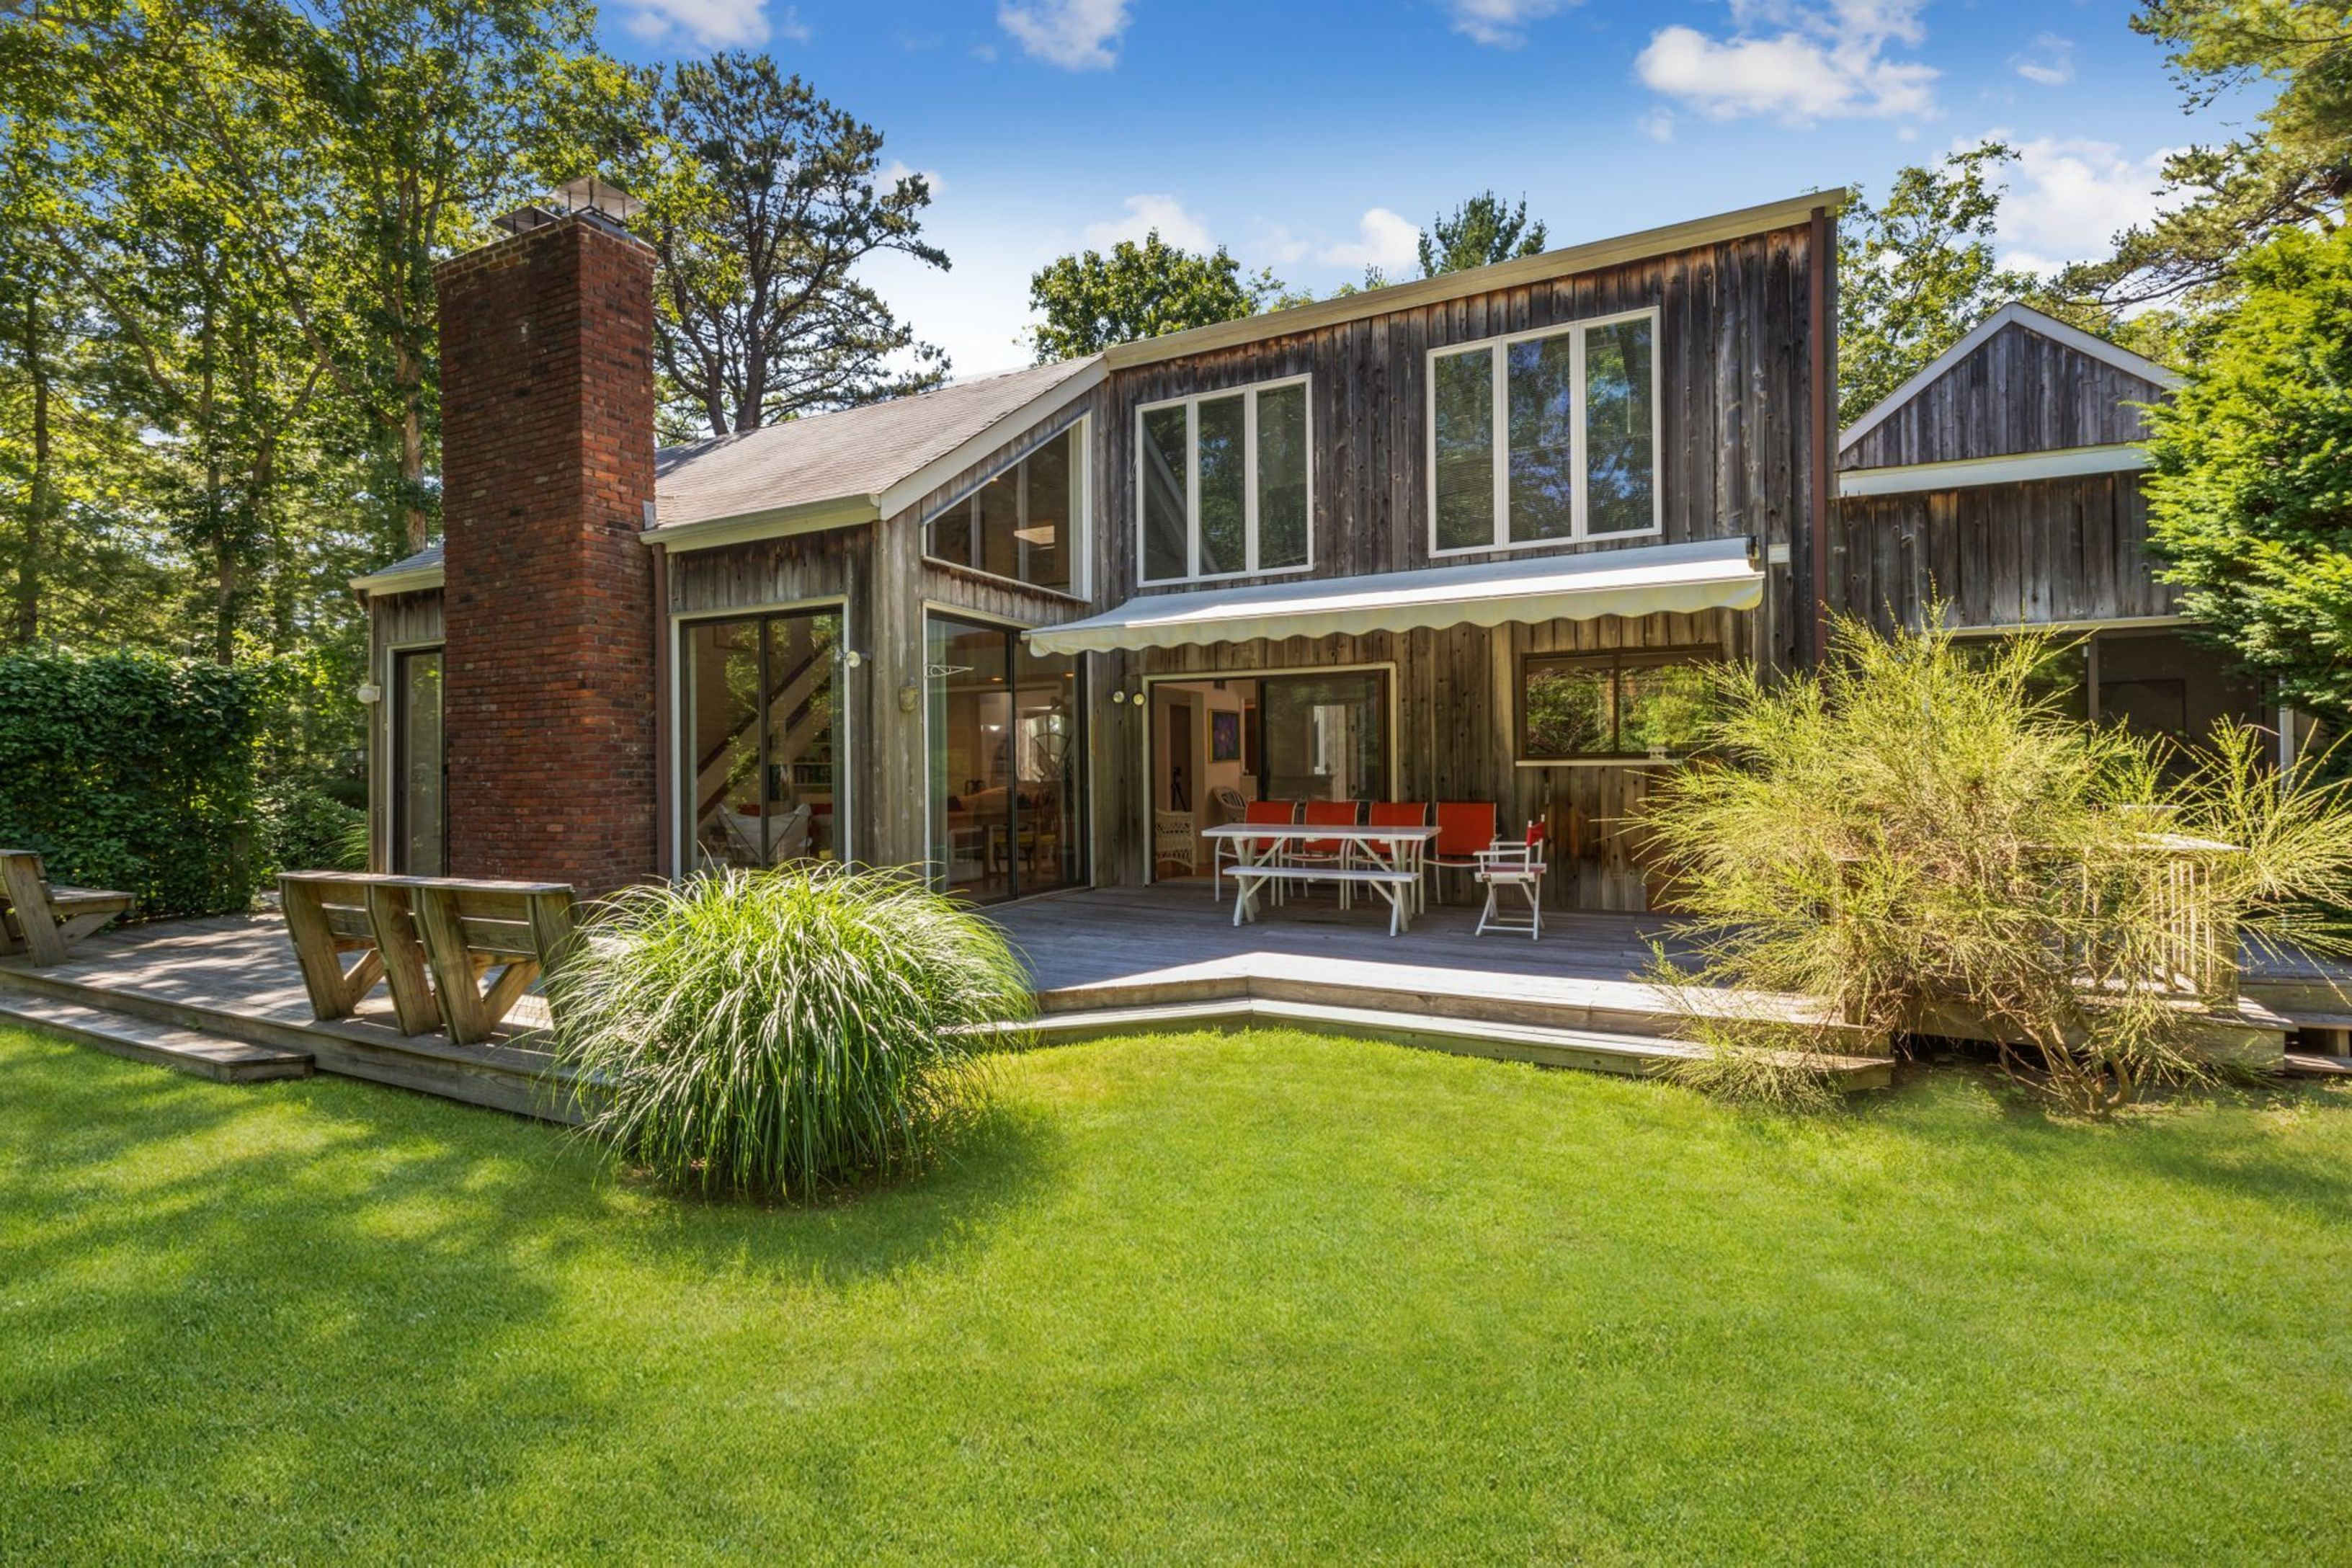 222 Buckskill Rd - East Hampton Village Fringe, New York